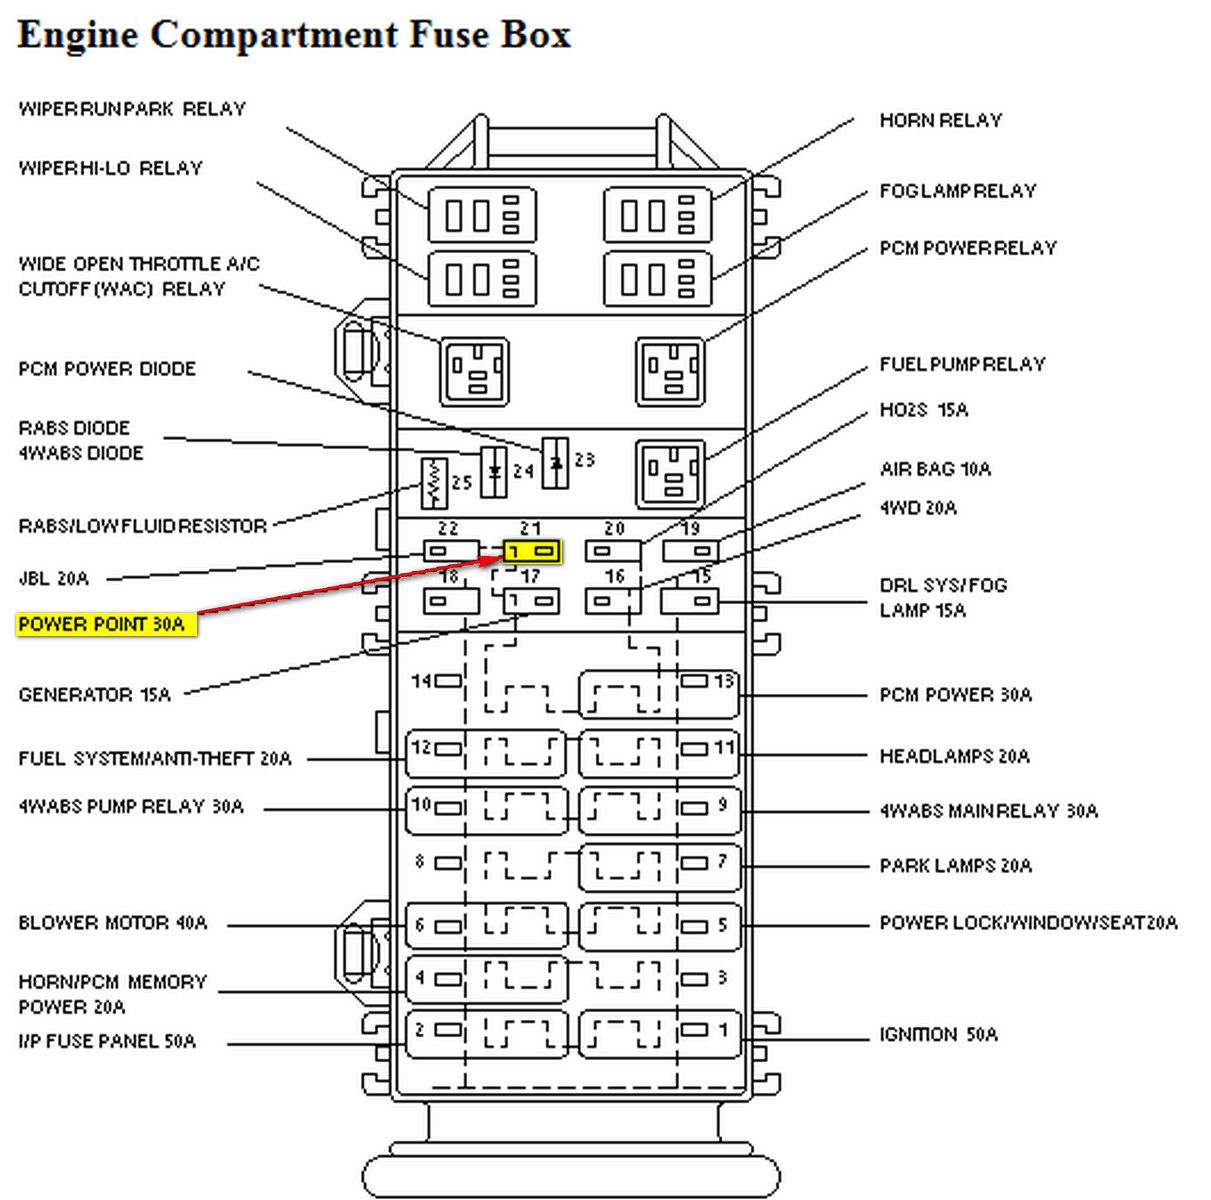 1997 ford ranger fuse box diagram truck part diagrams [ 1211 x 1200 Pixel ]